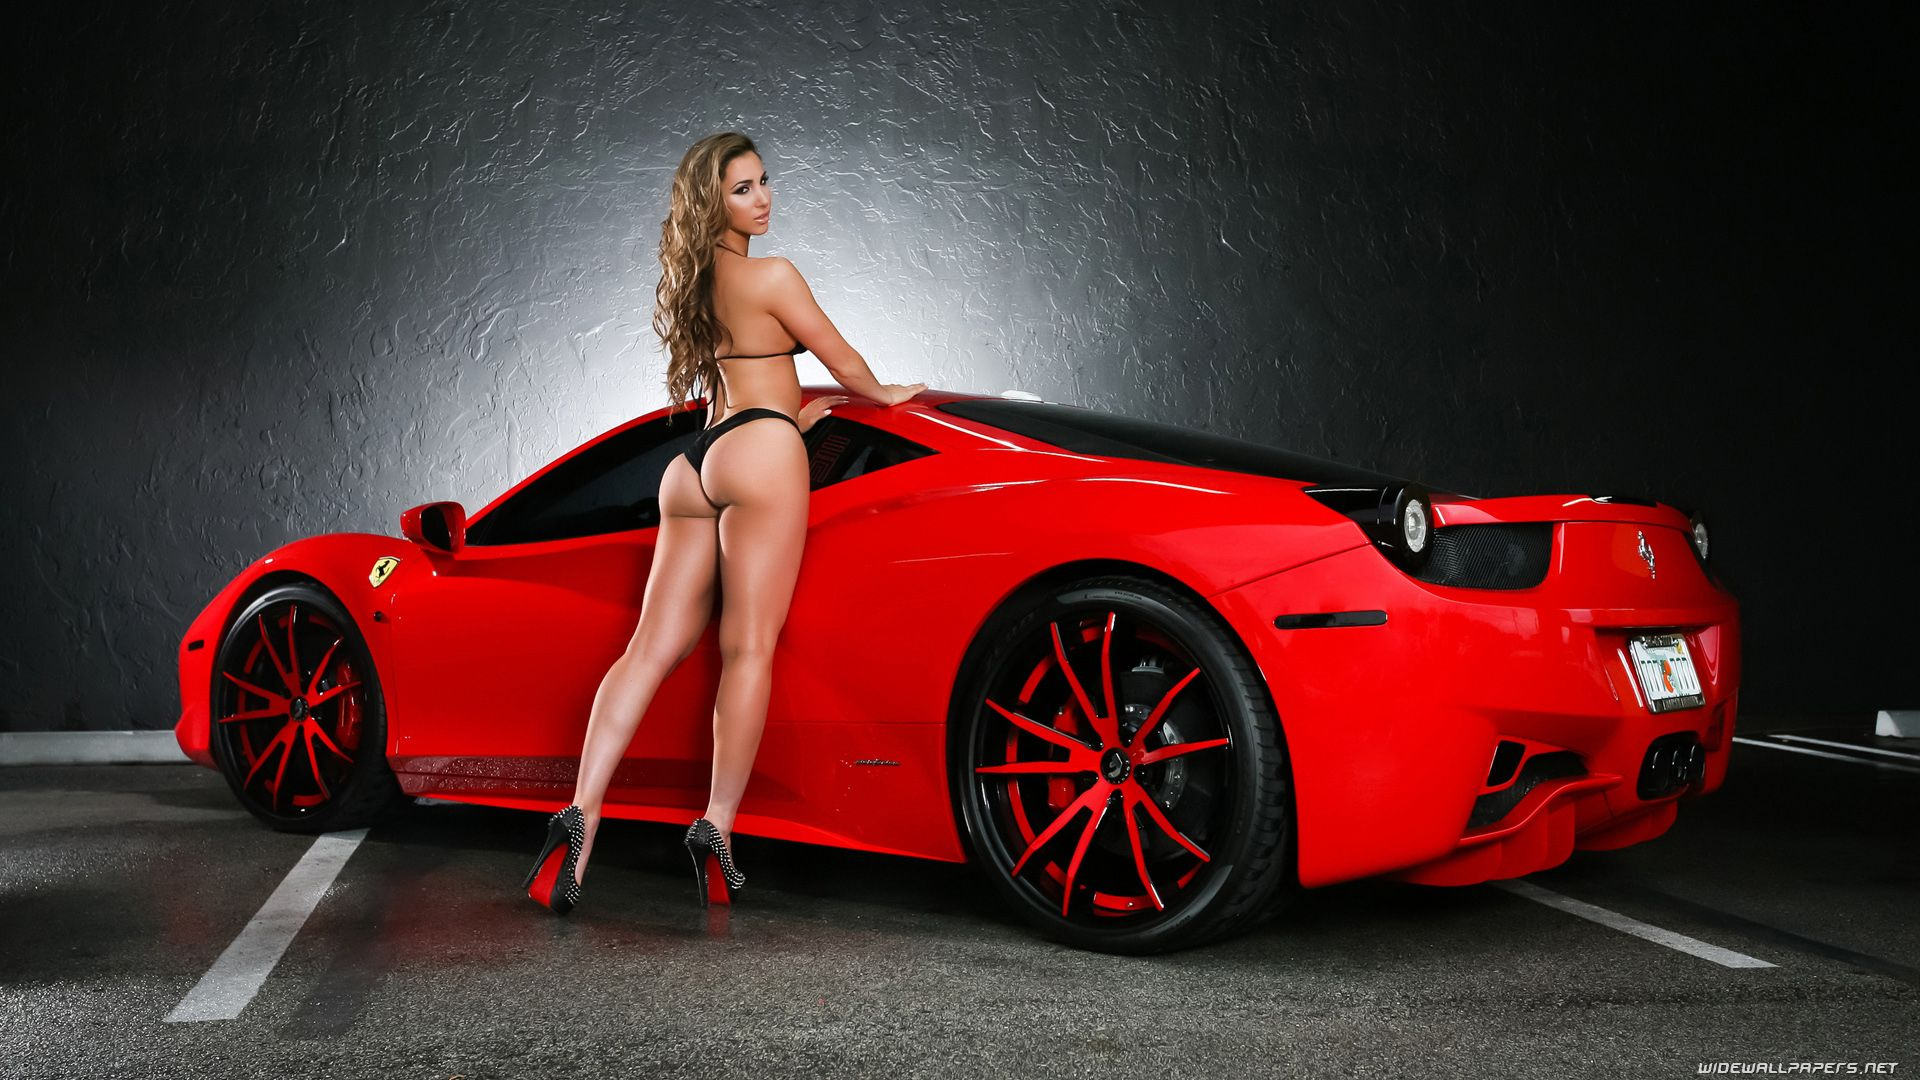 Think, cool cars with naked girls by them with condoms pity, that